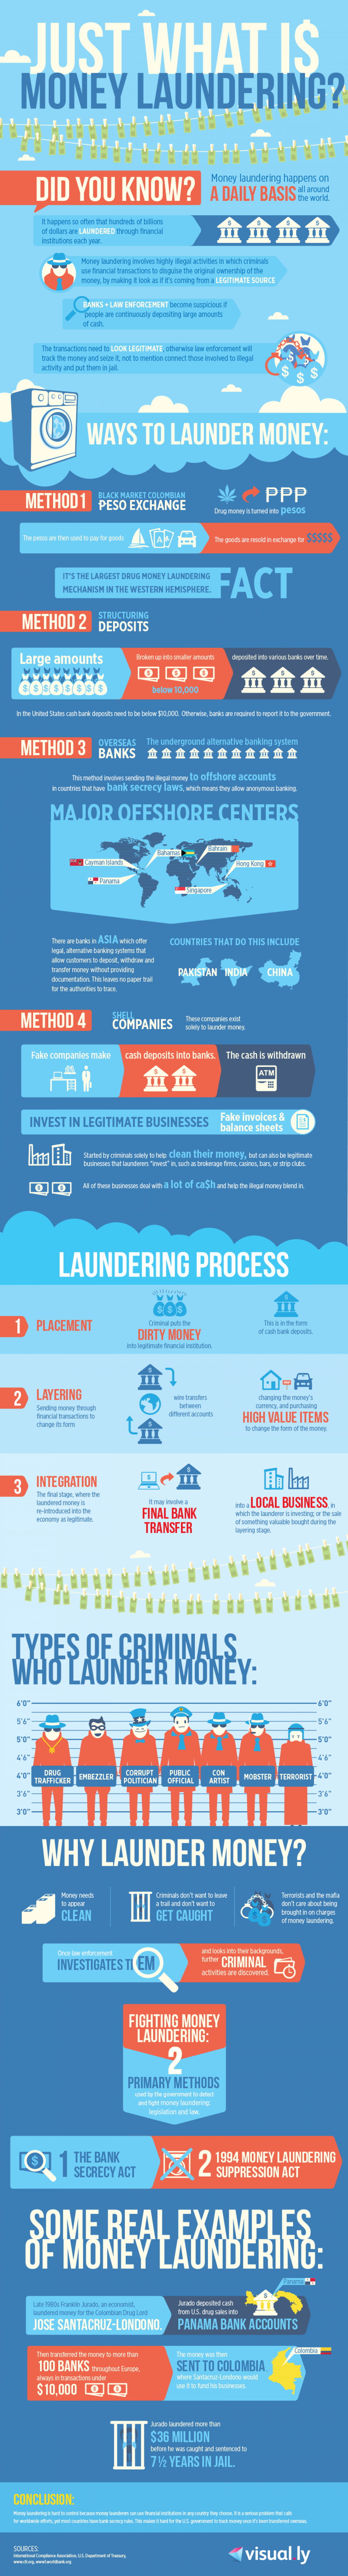 Just What Is Money Laundering? Infographic